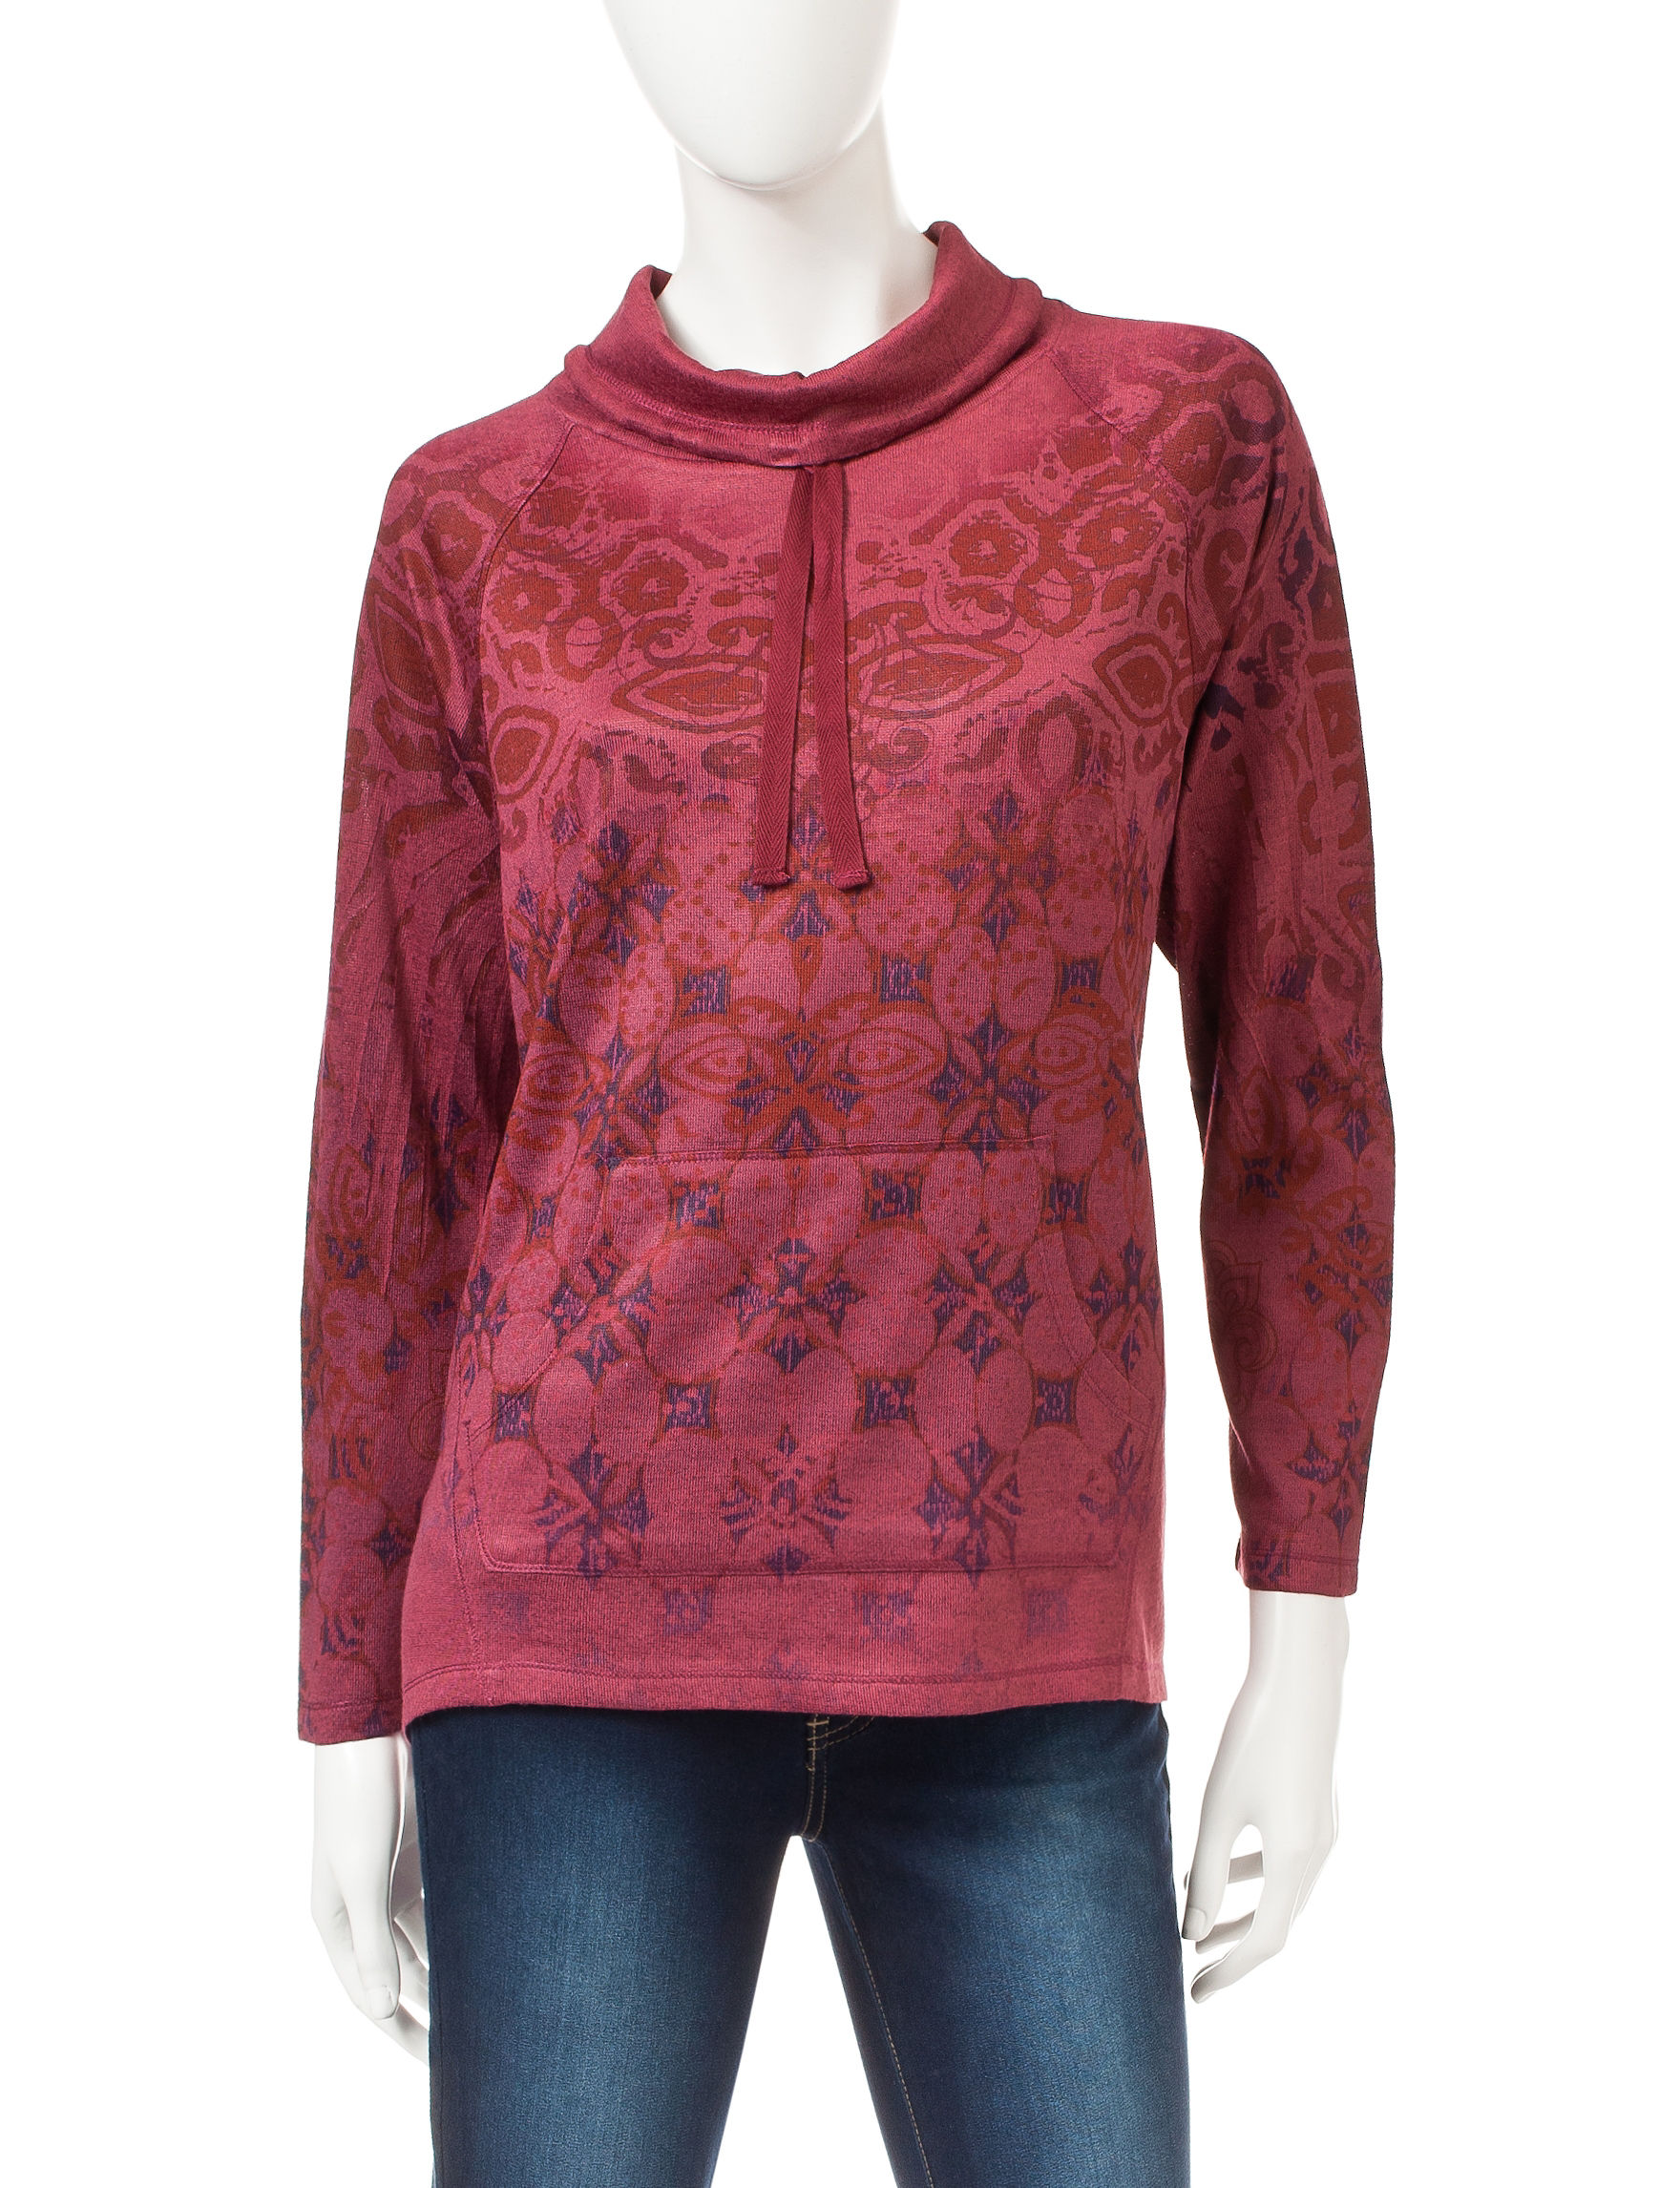 Energe Red Pull-overs Shirts & Blouses